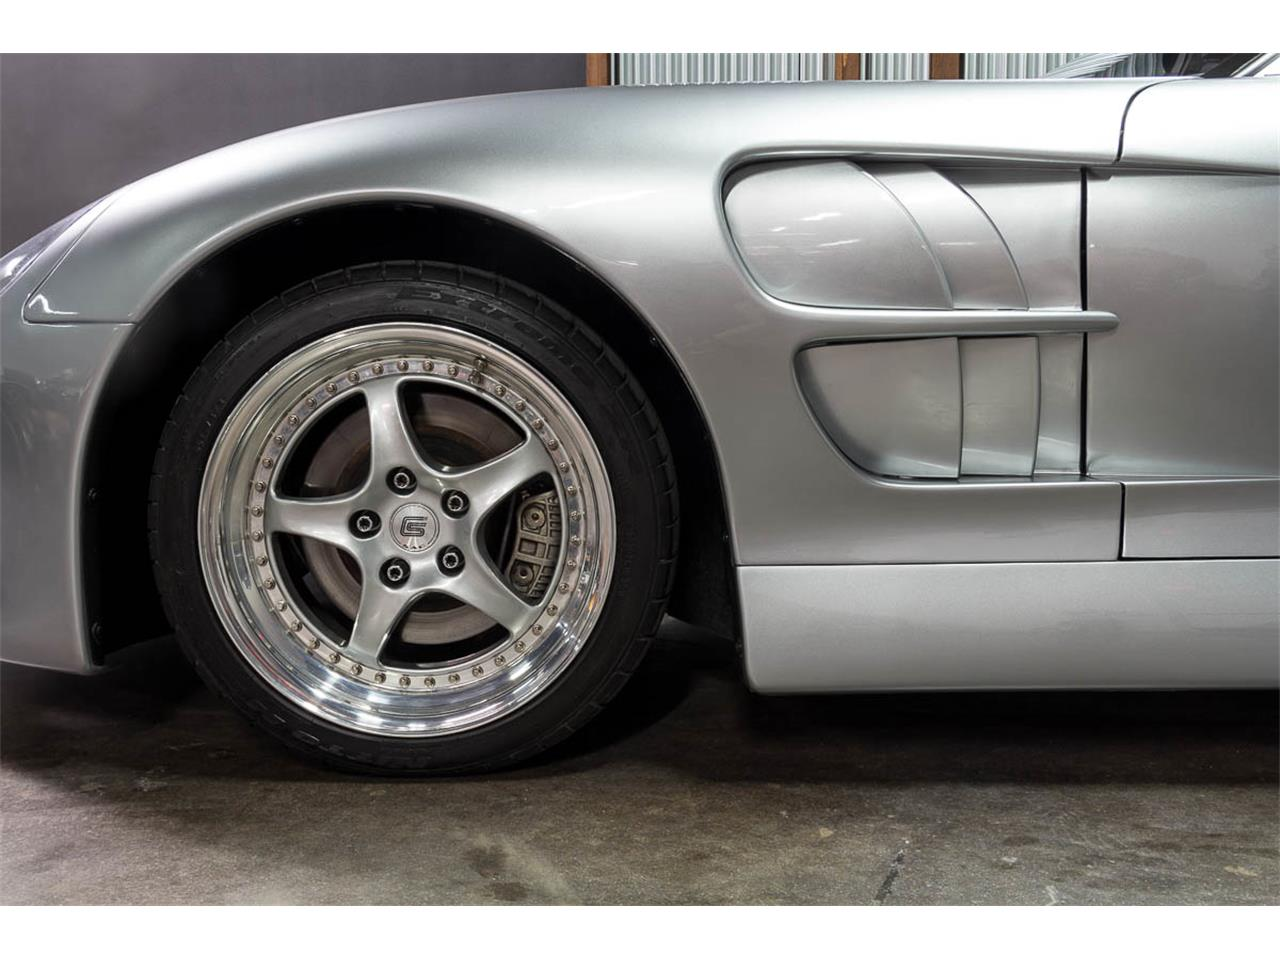 Large Picture of 1999 Shelby Series 1 - $109,900.00 Offered by a Private Seller - M5H1